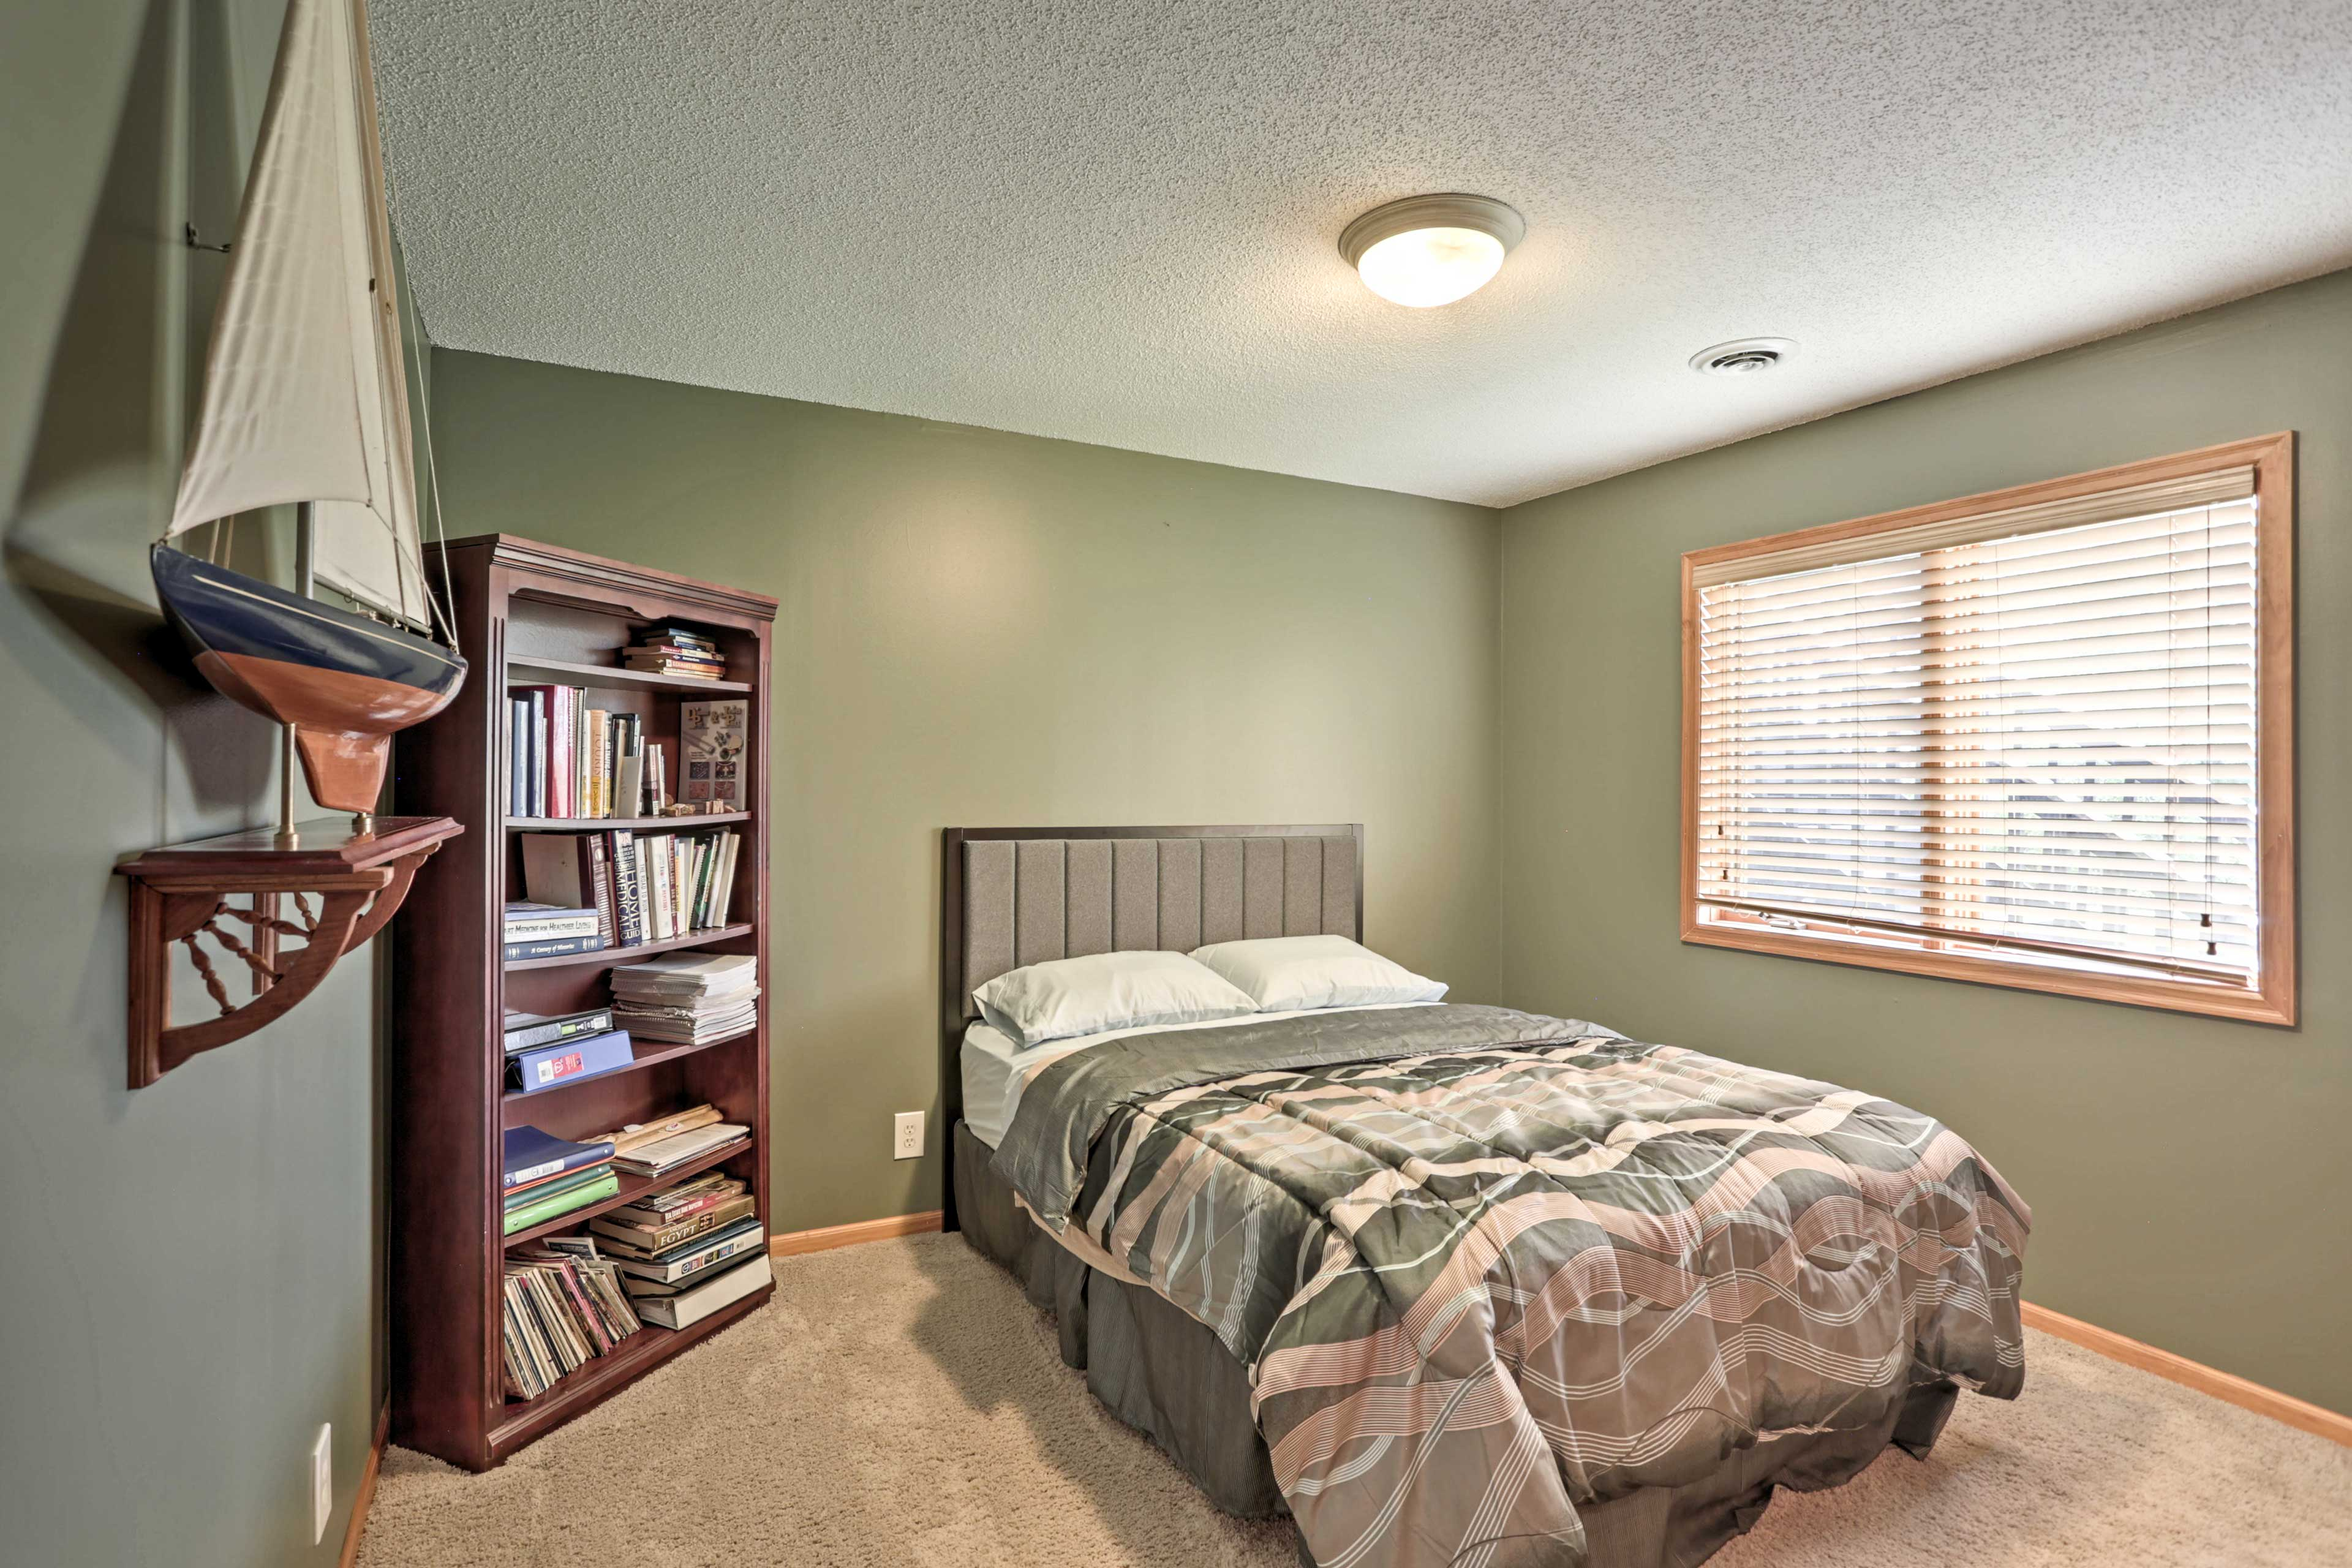 Cozy up in the full bed in this second bedroom.